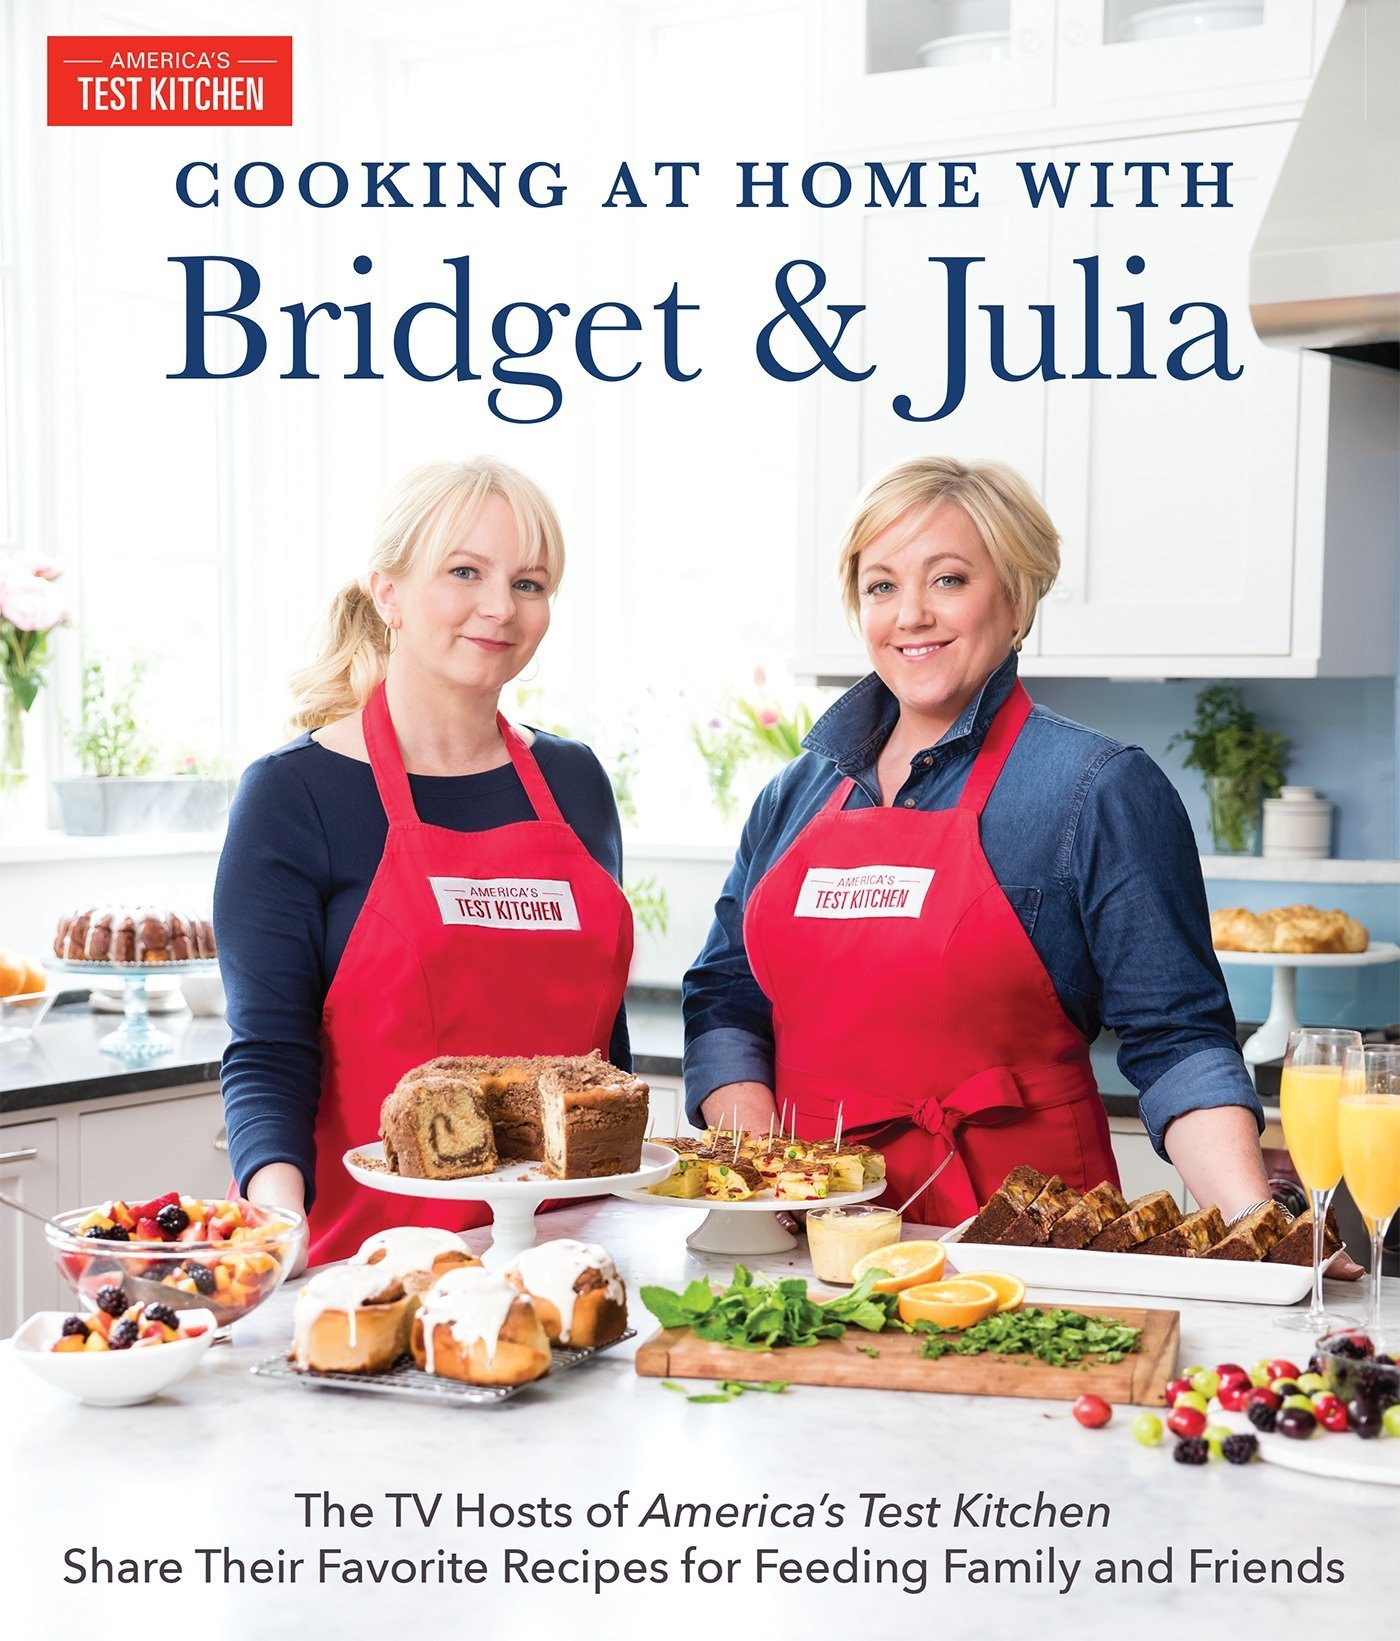 Pleasant Cooking At Home With Bridget Julia The Tv Hosts Of Interior Design Ideas Helimdqseriescom